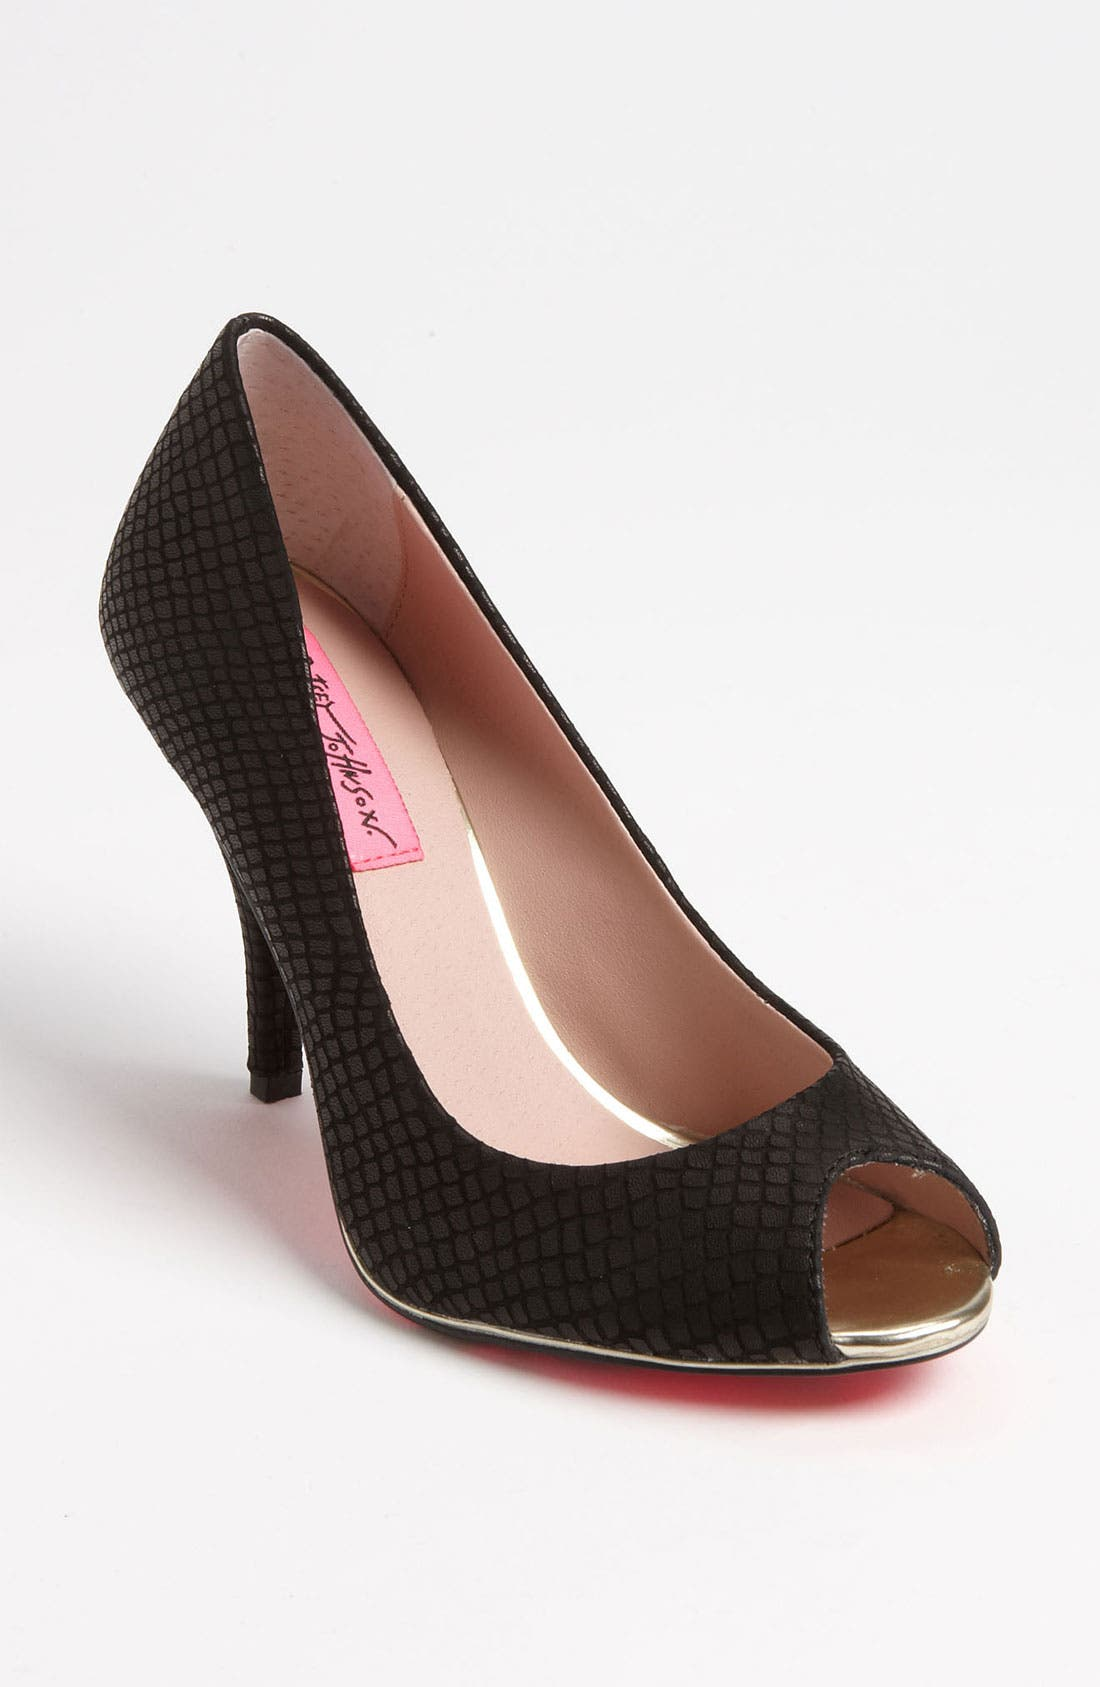 Main Image - Betsey Johnson 'Ponzay' Pump